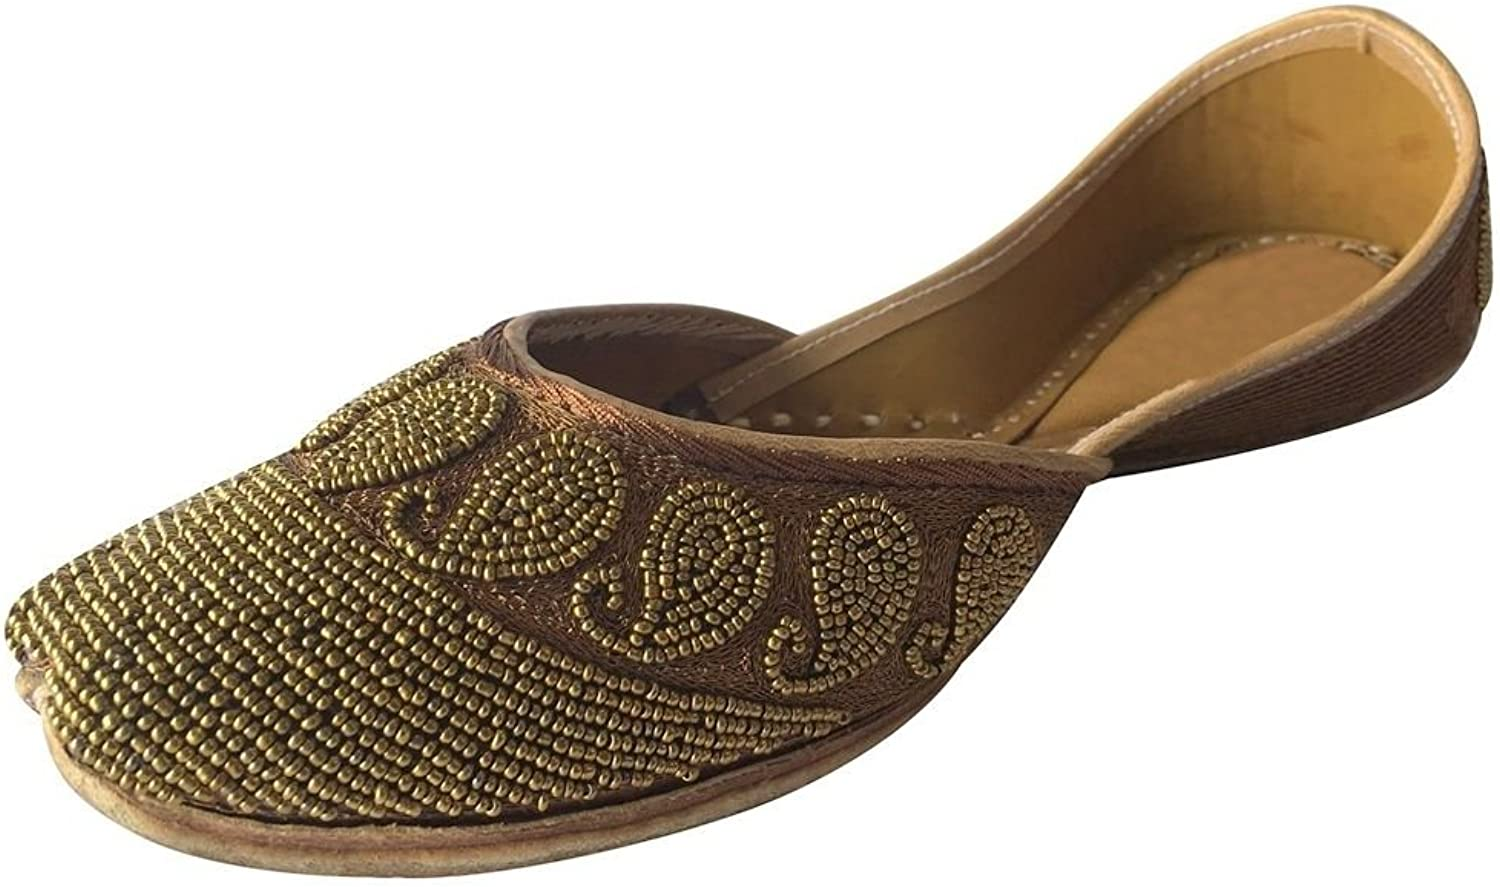 Step n Style Jutti Indian shoes Flat shoes Khussa shoes Mojari Saree Jooti Flip Flop